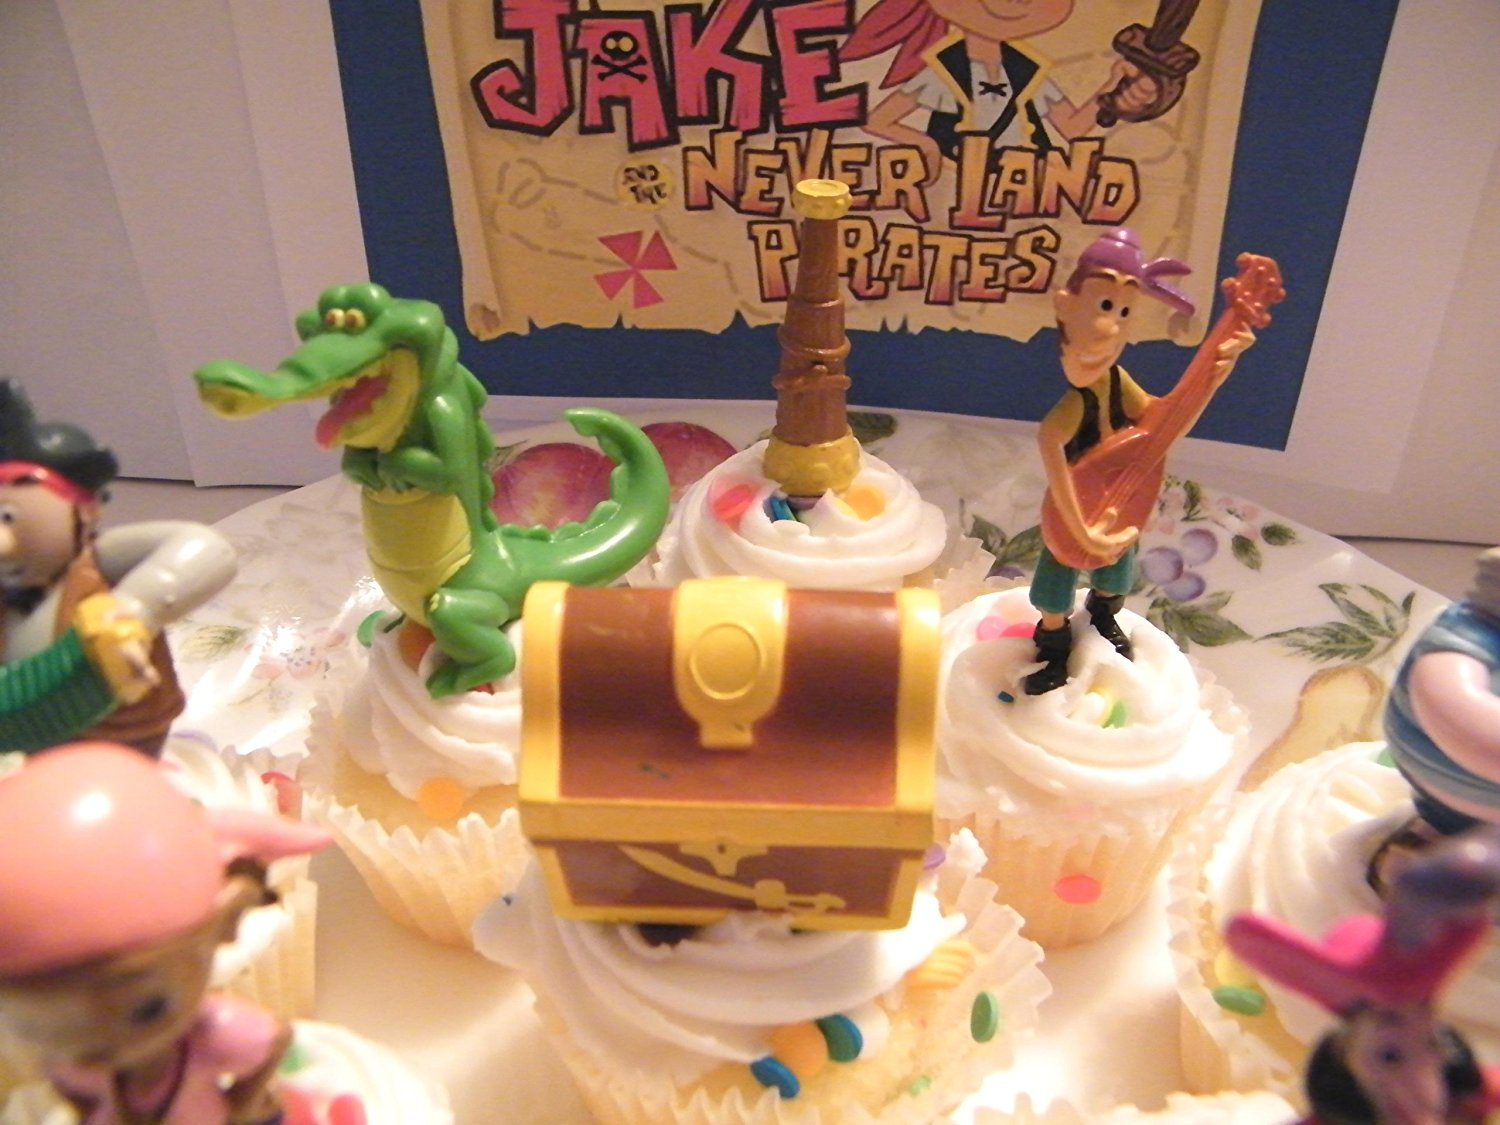 Astonishing Disney Jake And The Never Land Pirates Figure Cake Toppers Personalised Birthday Cards Fashionlily Jamesorg